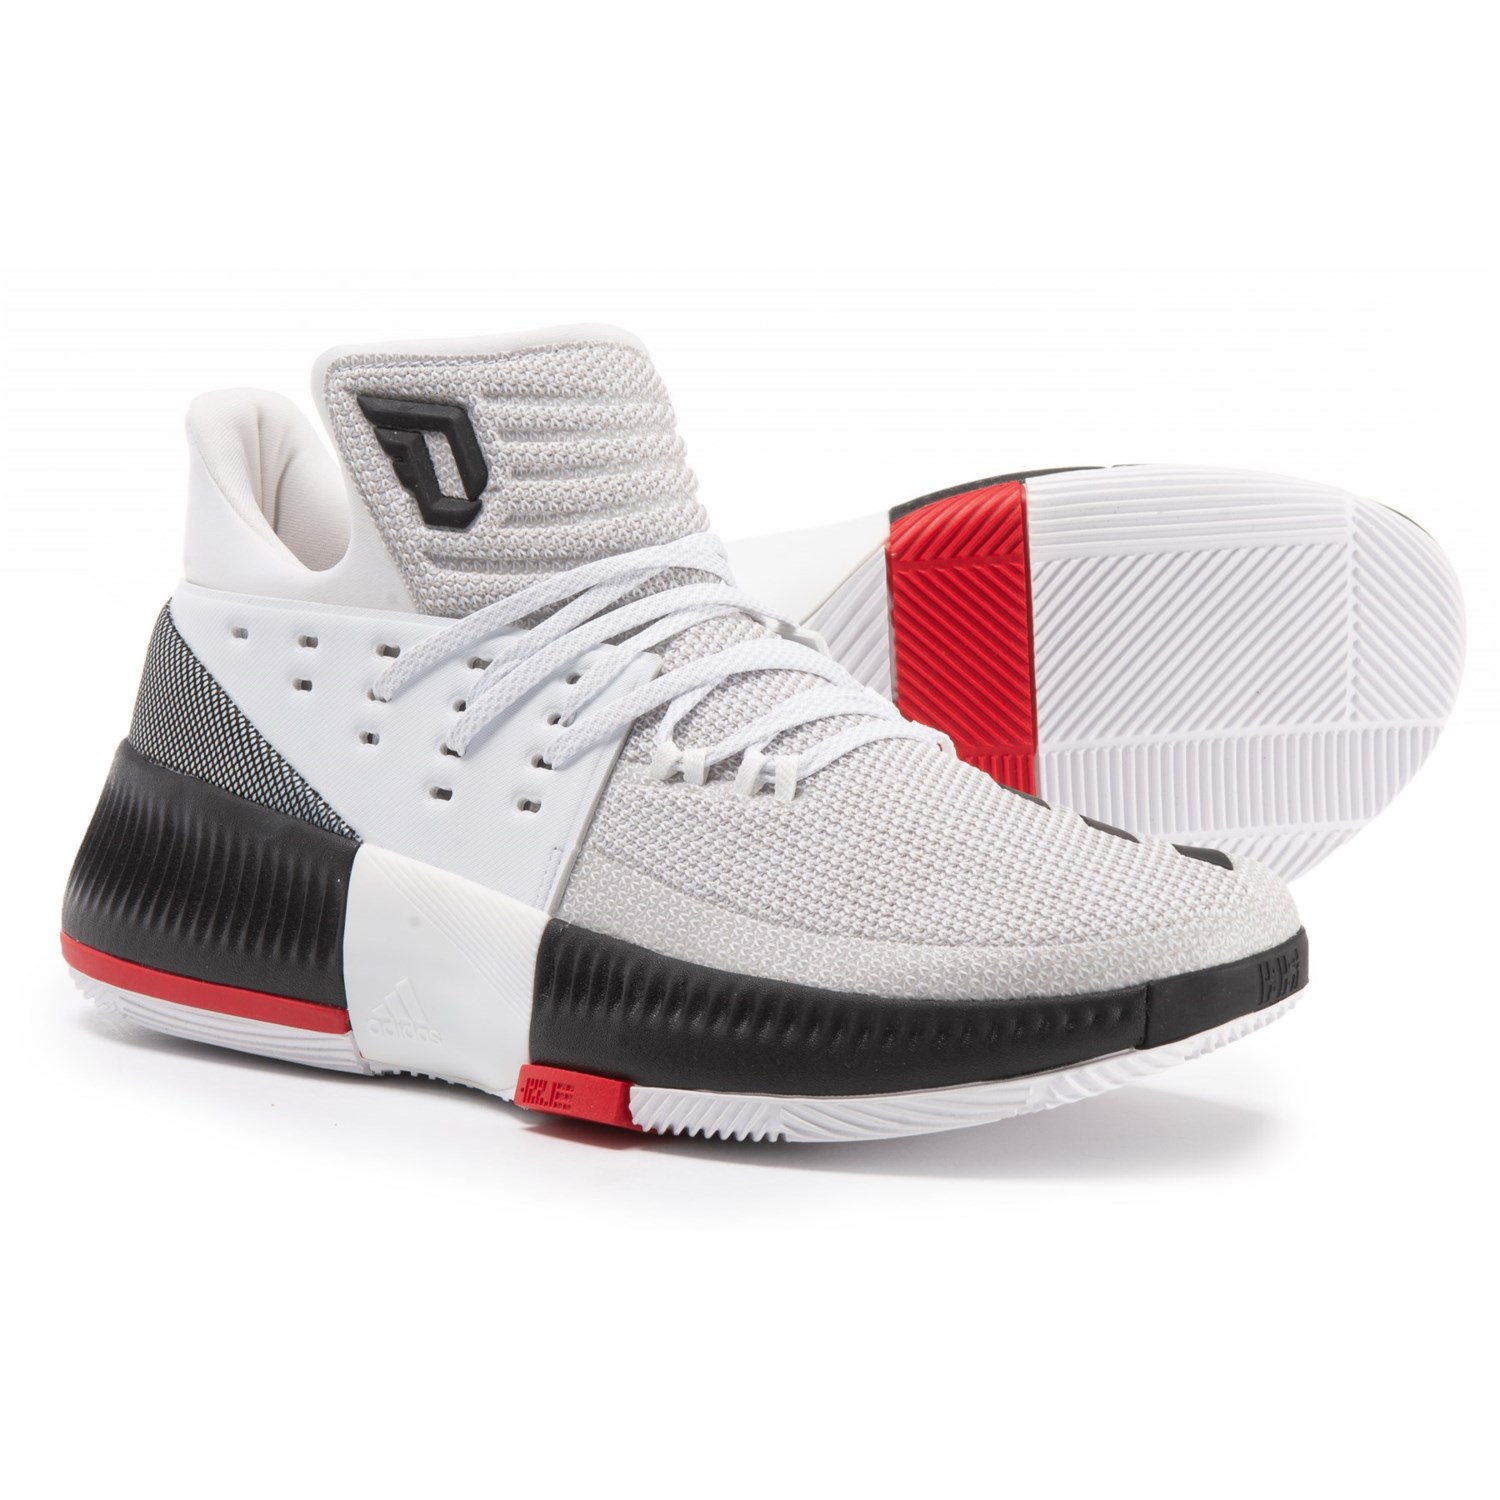 timeless design c5802 3c709 ... coupon code for adidas damian lillard 3 basketball shoes for men in  footwear white core black